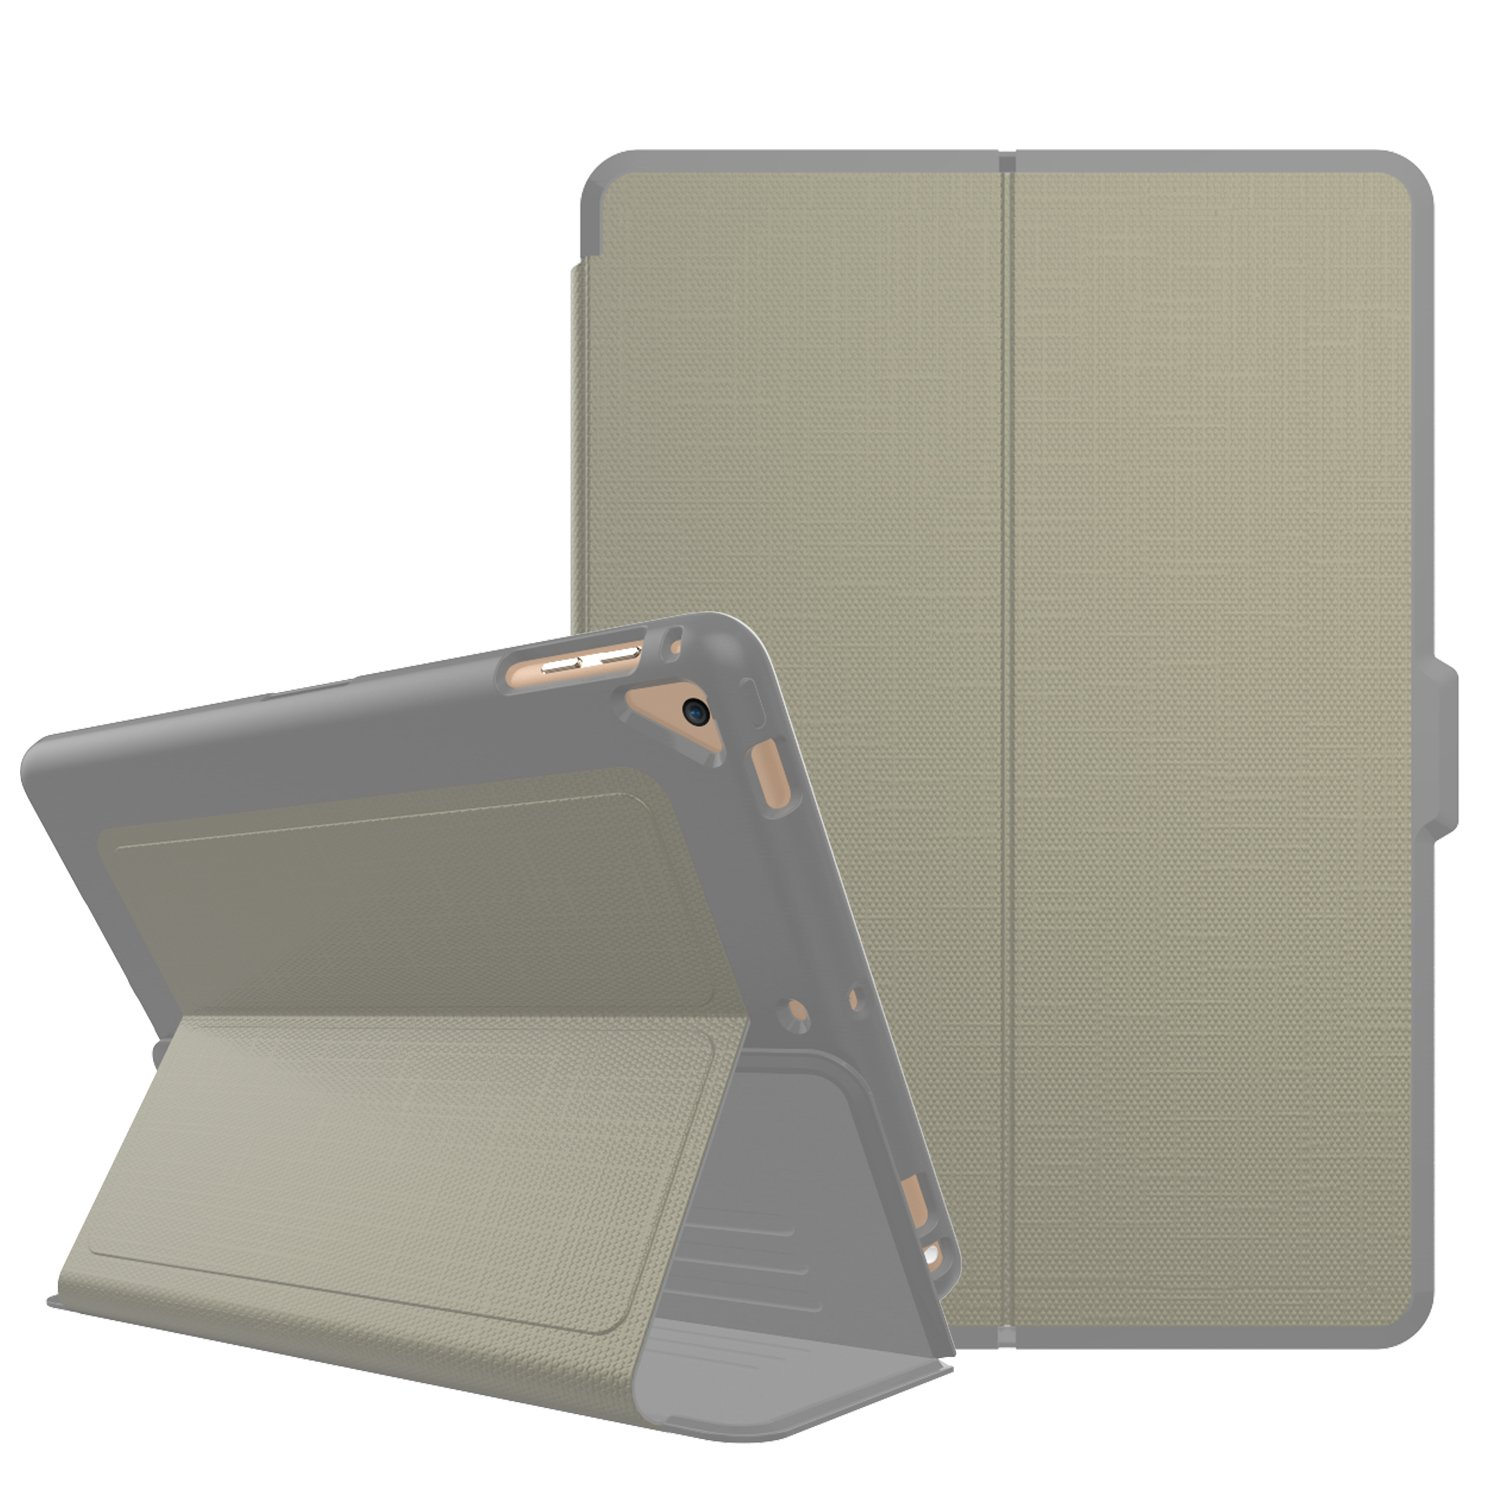 Qelus iPad 5th/6th Generation Case, iPad 9.7 2018/2017 Case Leather Hybrid Shockproof Protective Smart iPad Case Cover with Magnetic Stand, Auto Wake/Sleep Case for Apple iPad 2018/2017 (Khaki Grey) by Qelus